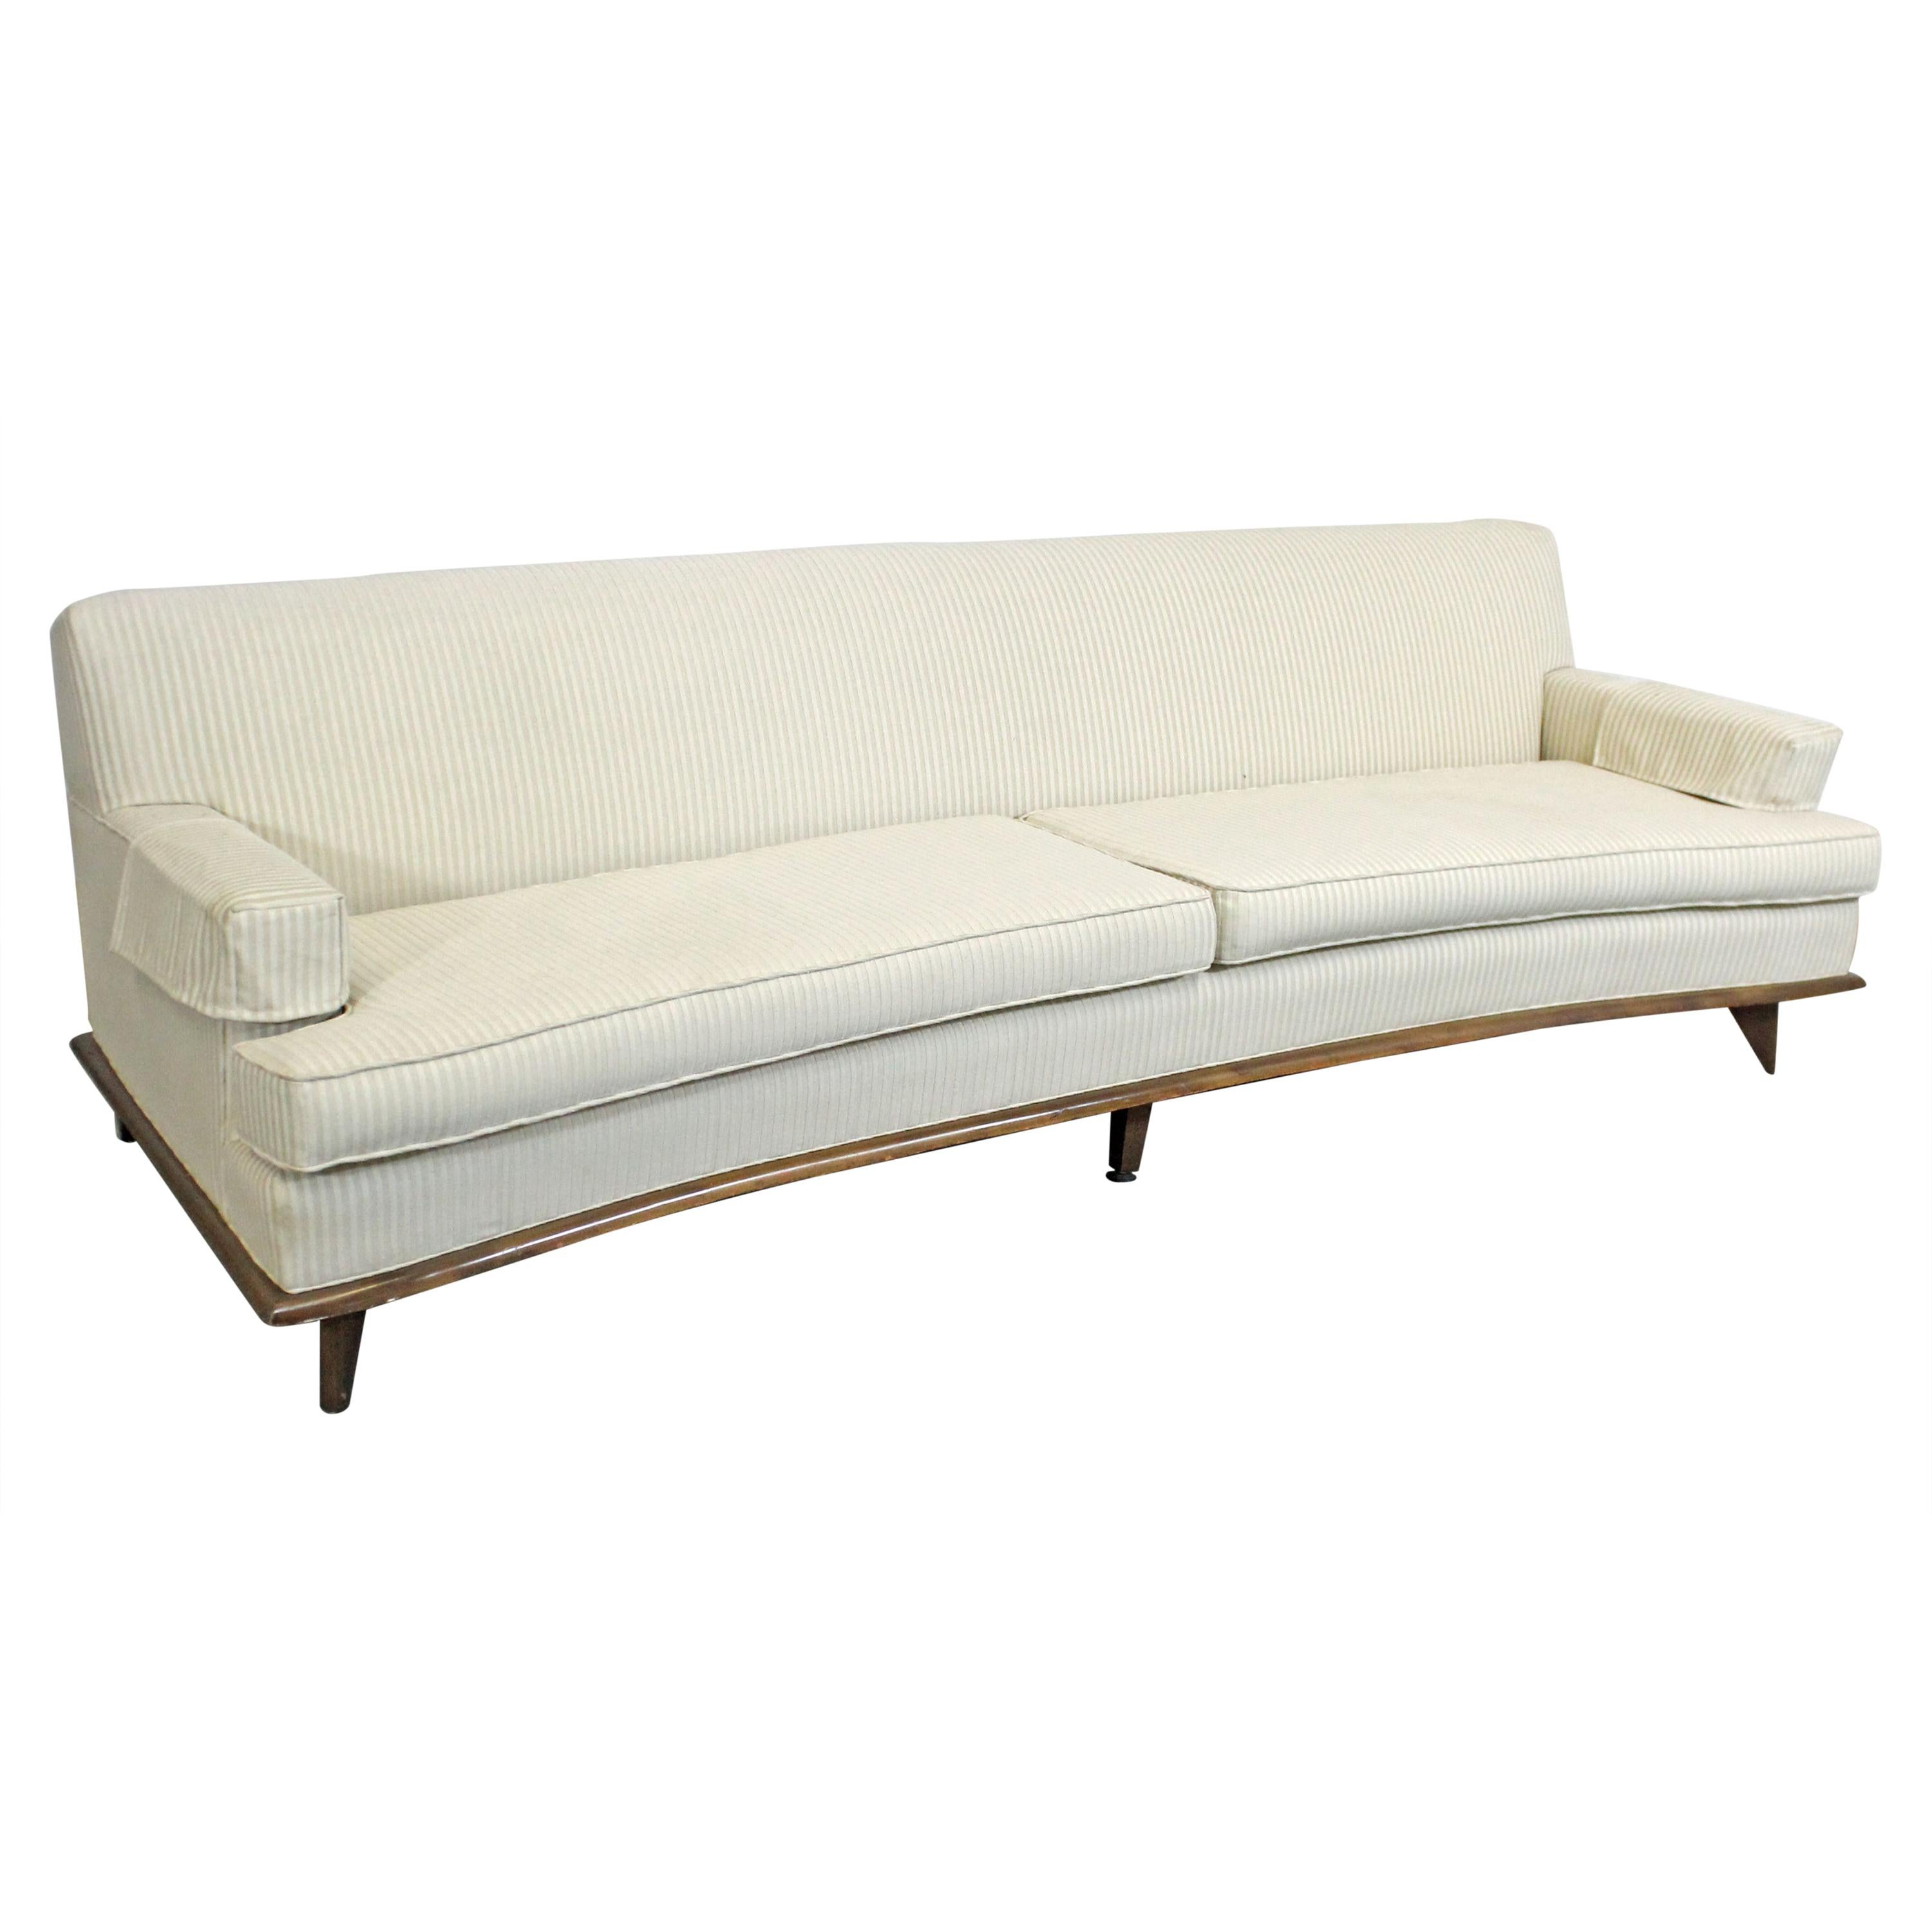 Excellent Mid Century Modern Concave Front White Sofa On Wood Base Beatyapartments Chair Design Images Beatyapartmentscom